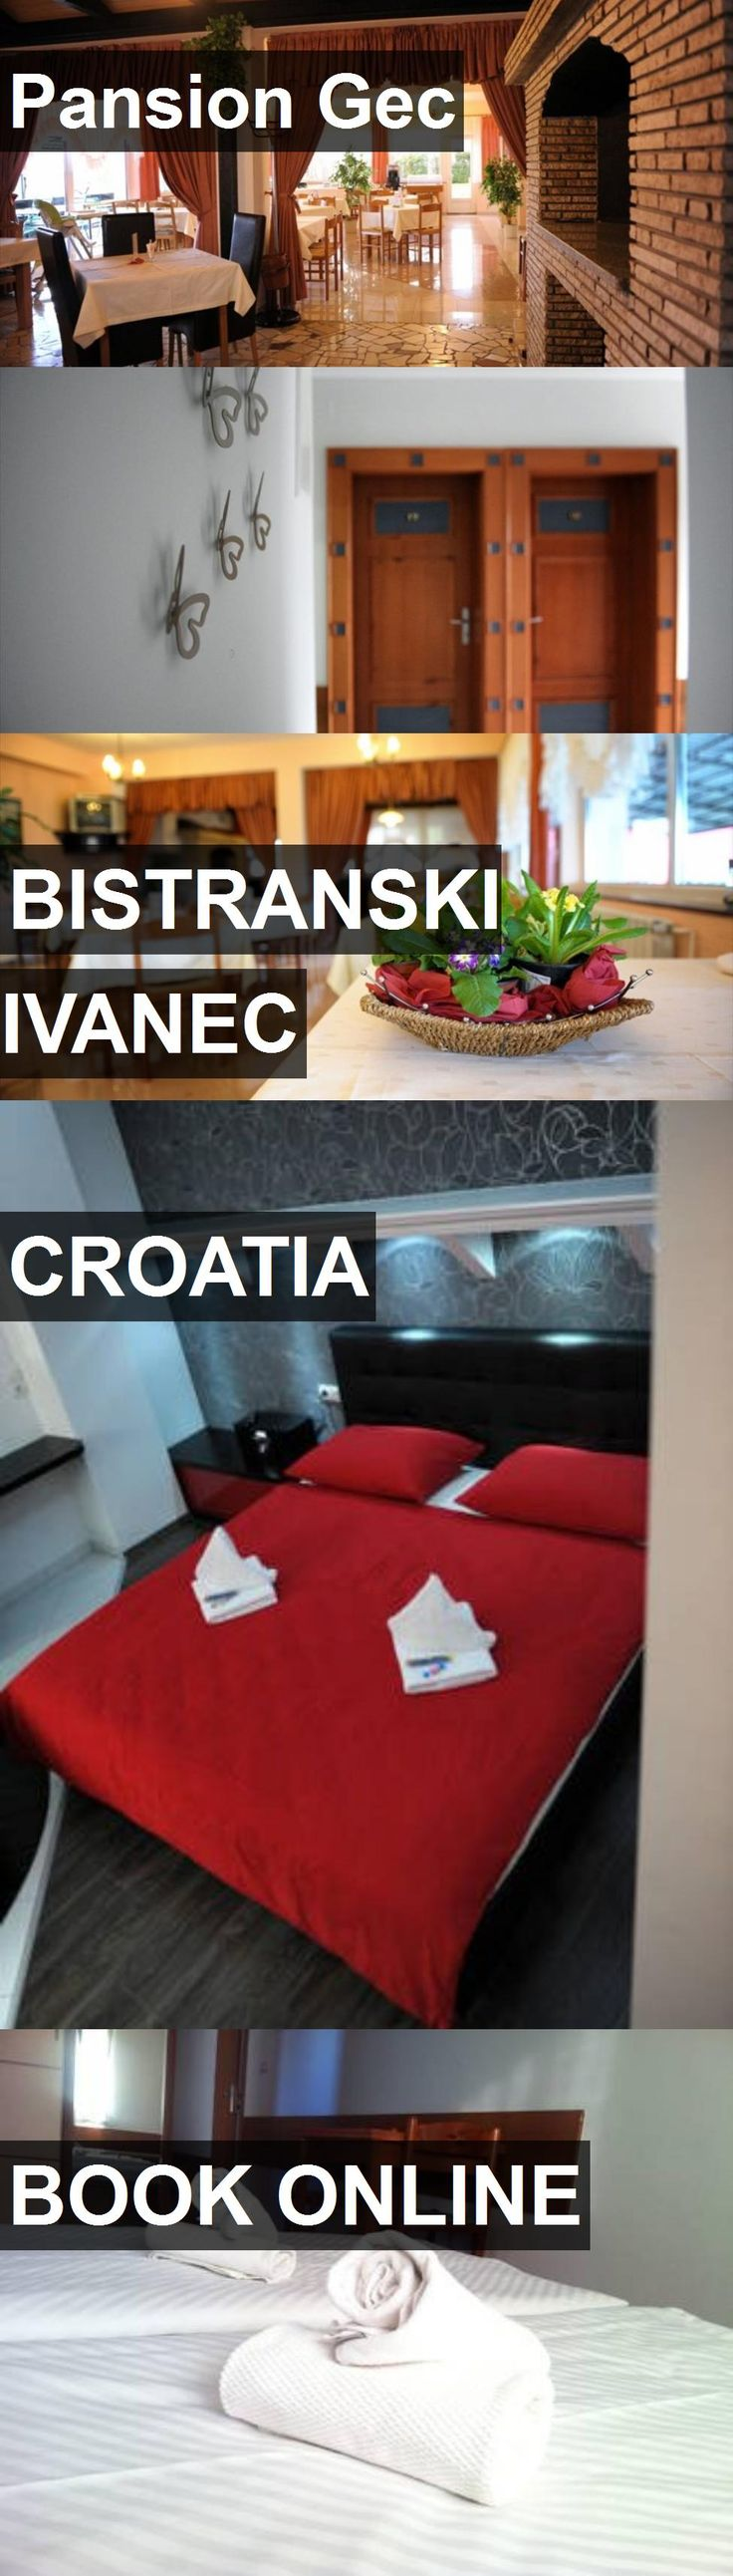 Hotel Pansion Gec in Bistranski Ivanec, Croatia. For more information, photos, reviews and best prices please follow the link. #Croatia #BistranskiIvanec #travel #vacation #hotel